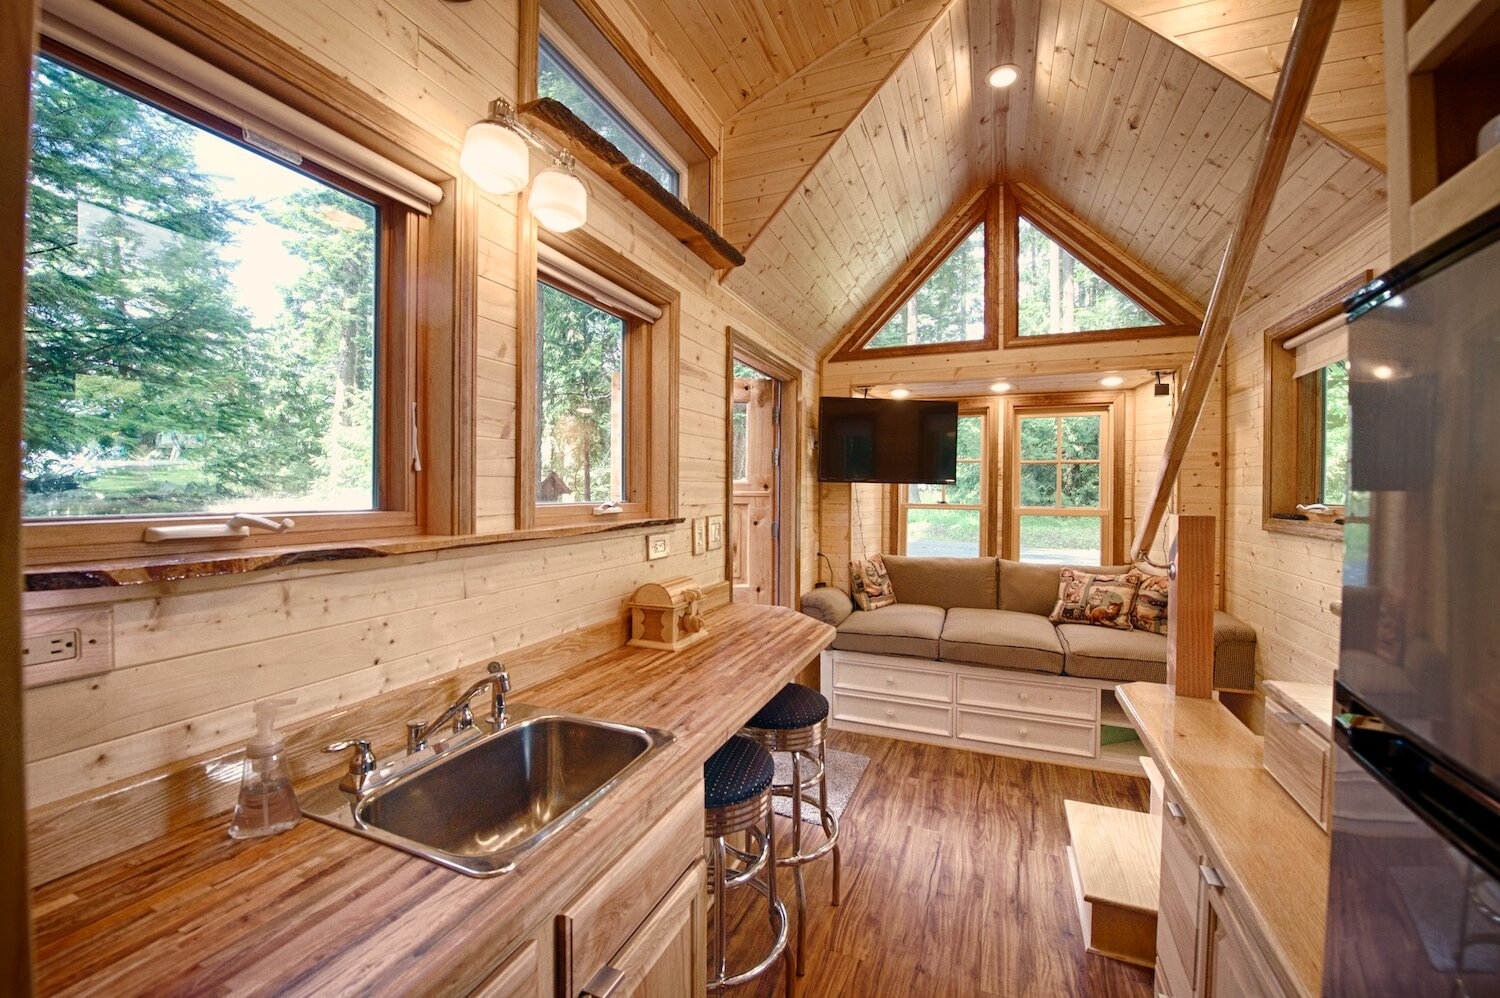 Woods Vintage Home Interiors A Tiny House With A Sauna Hope Island Cottages